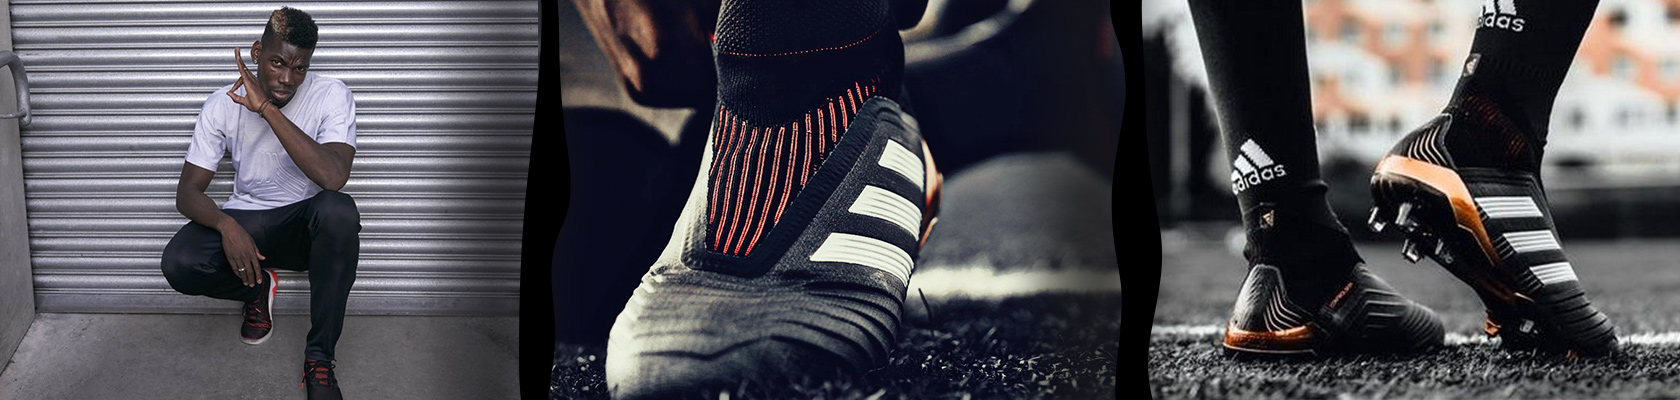 Intersport Paris : LE RETOUR DU MYTHE ADIDAS PREDATOR